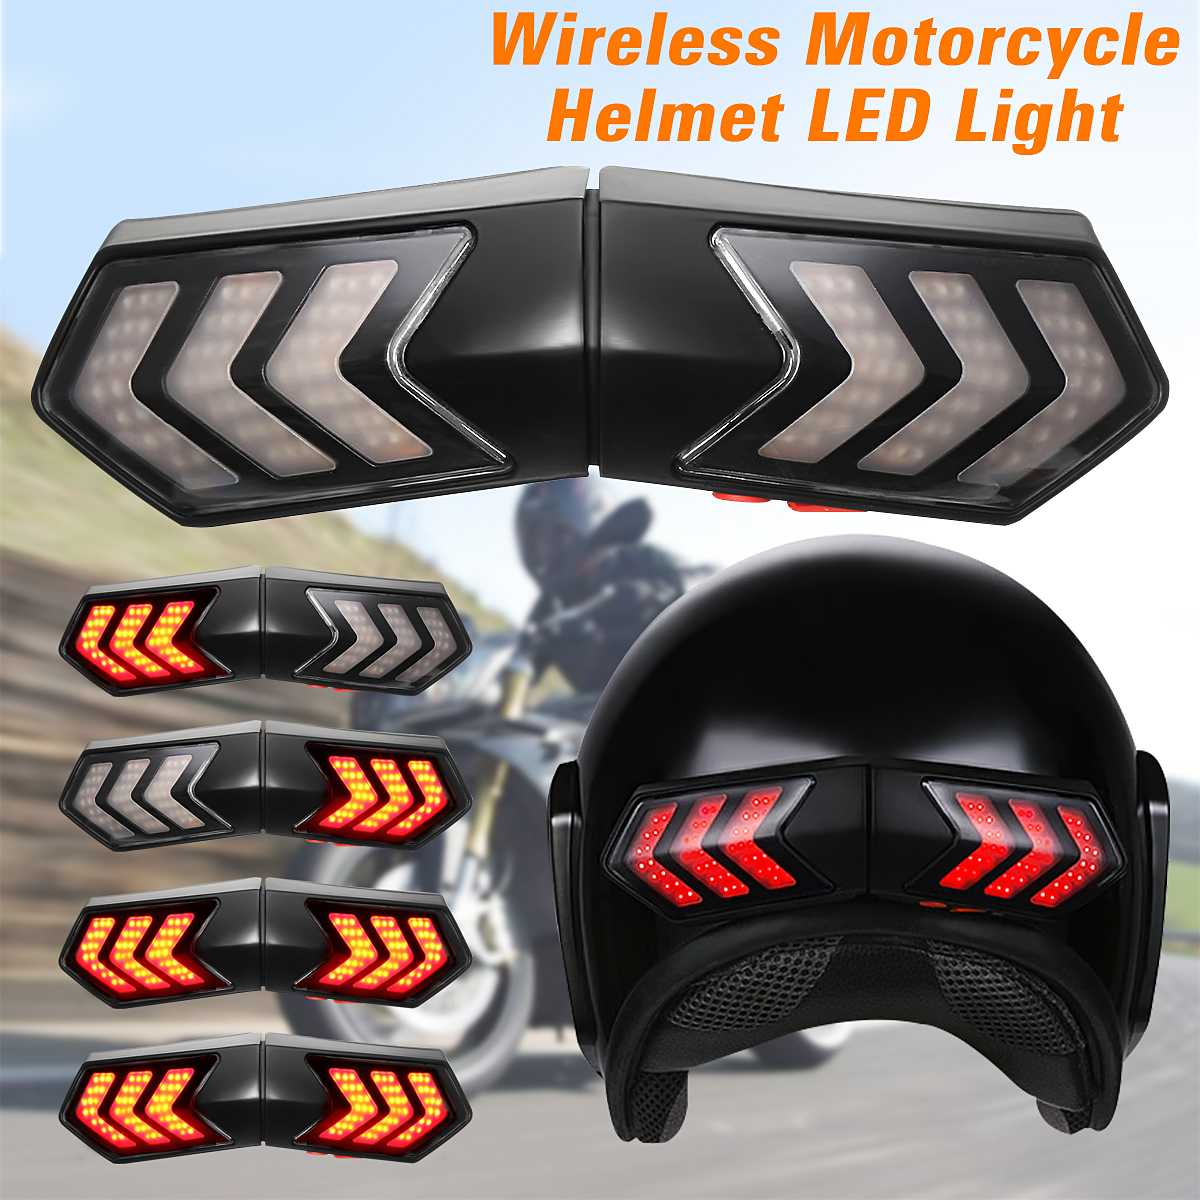 12V Wireless Motorcycle Helmet LED Safety Light Brake Lights Turn Signal Indicators